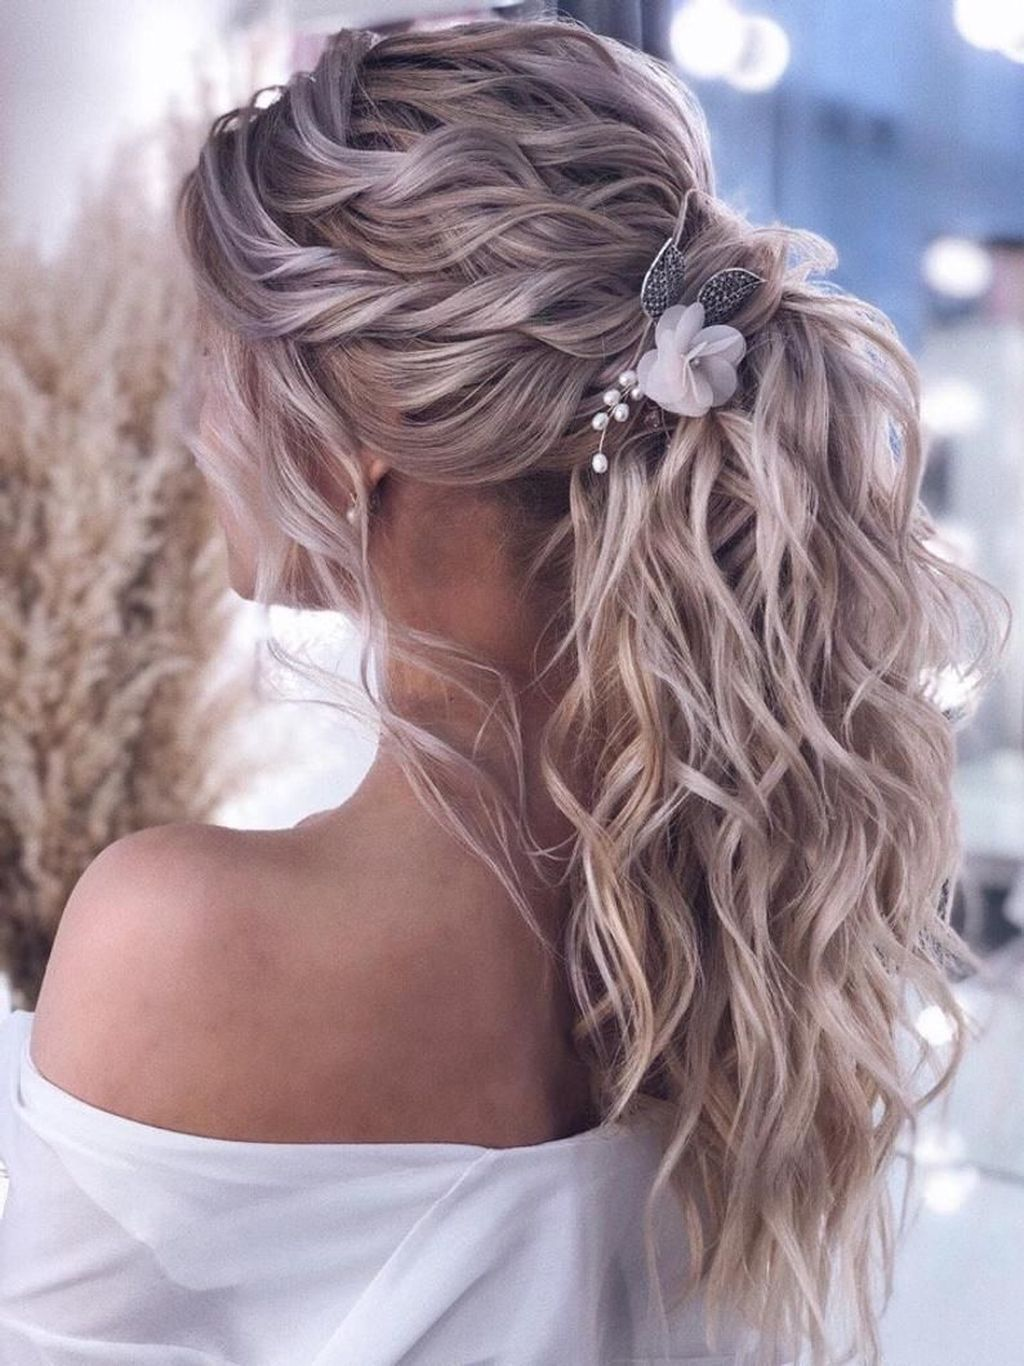 19 Prettiest Ponytail Updos for Wedding Hairstyles - Elegantweddinginvites.com Blog